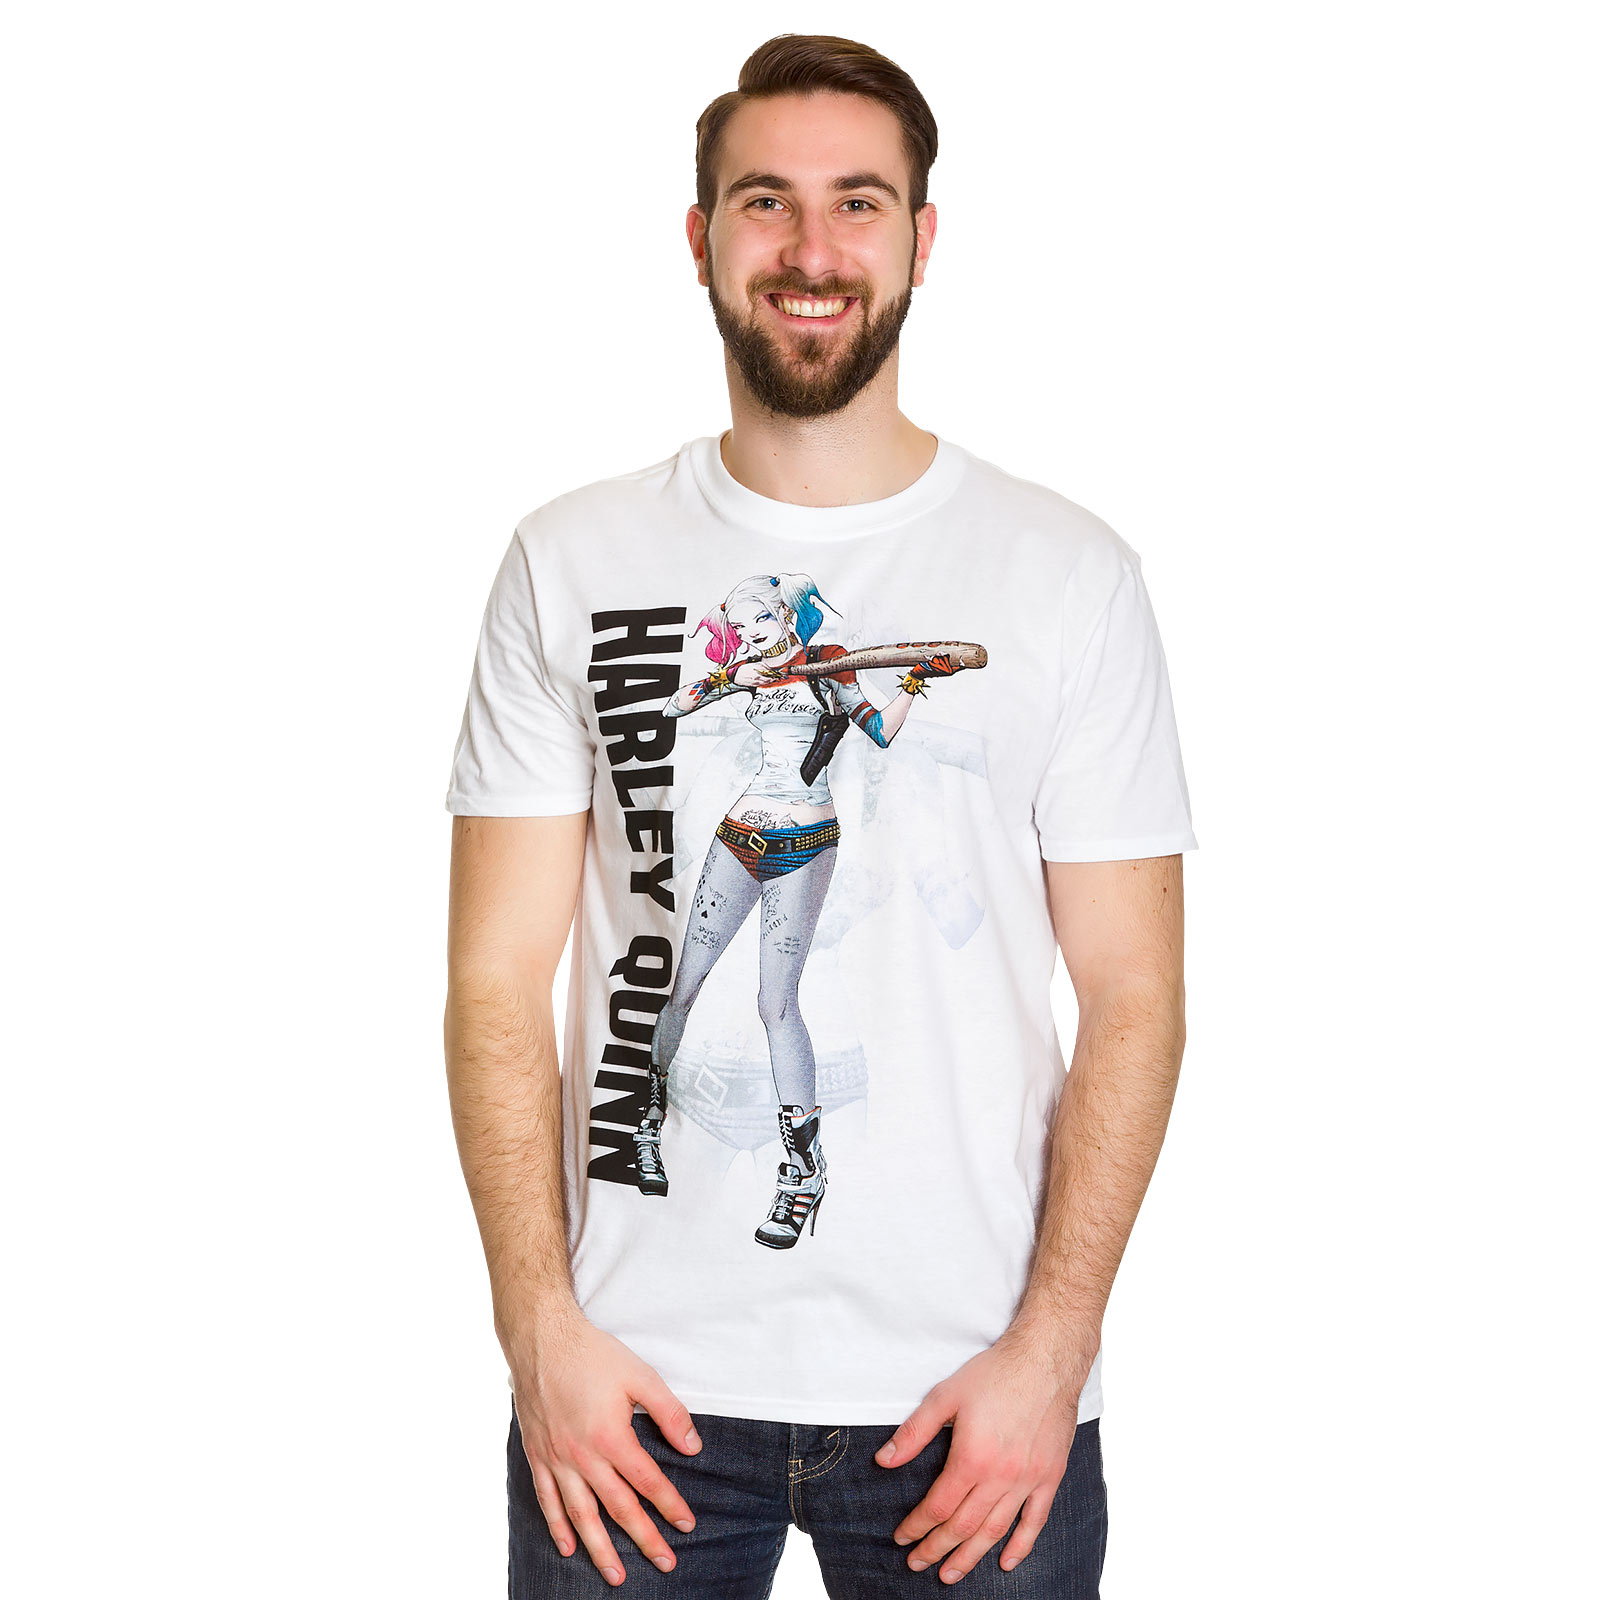 Suicide Squad - Harley Quinn Poster T-Shirt weiß